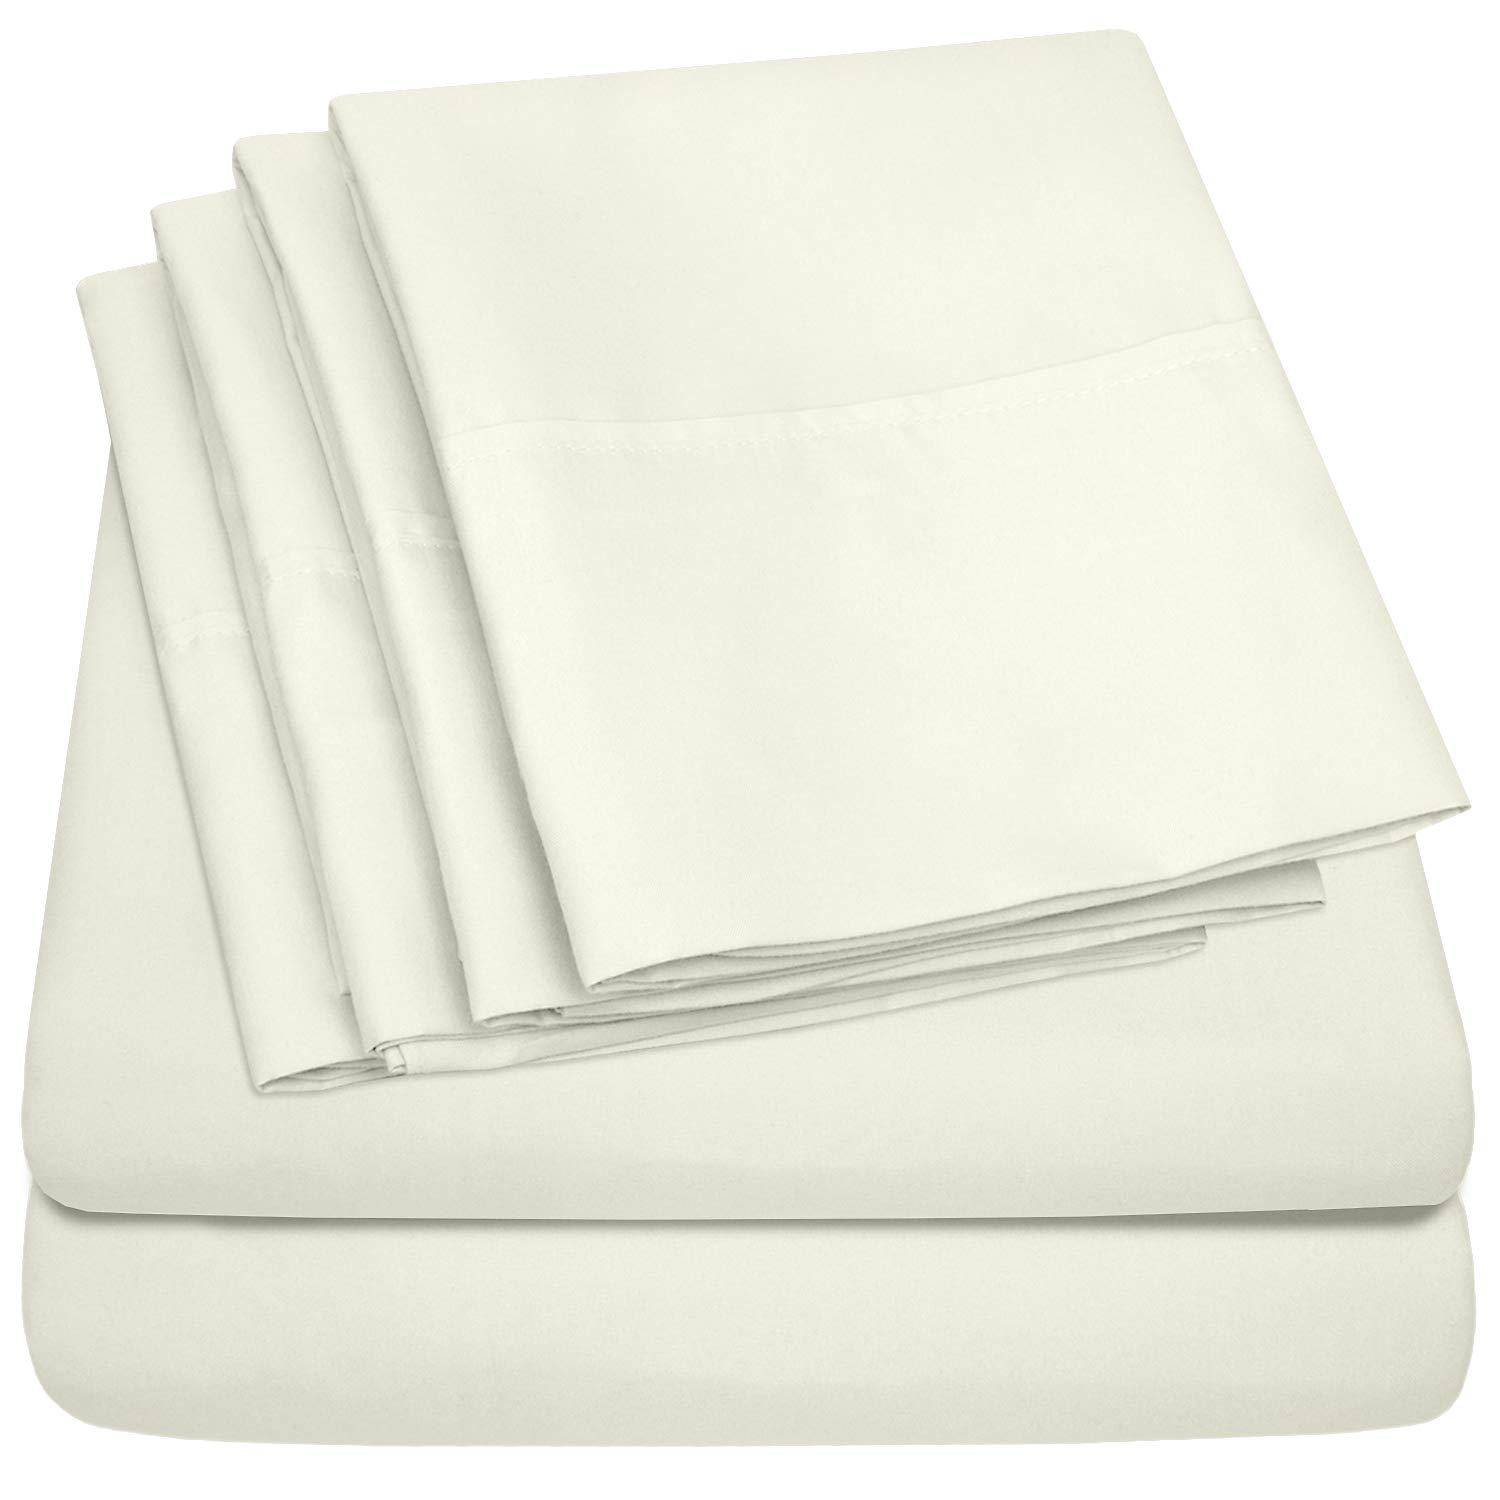 King Size Bed Sheets - 6 Piece 1500 Thread Count Fine Brushed Microfiber Deep Pocket King Sheet Set Bedding - 2 Extra Pillow Cases, Great Value, King, ivory by Sweet Home Collection